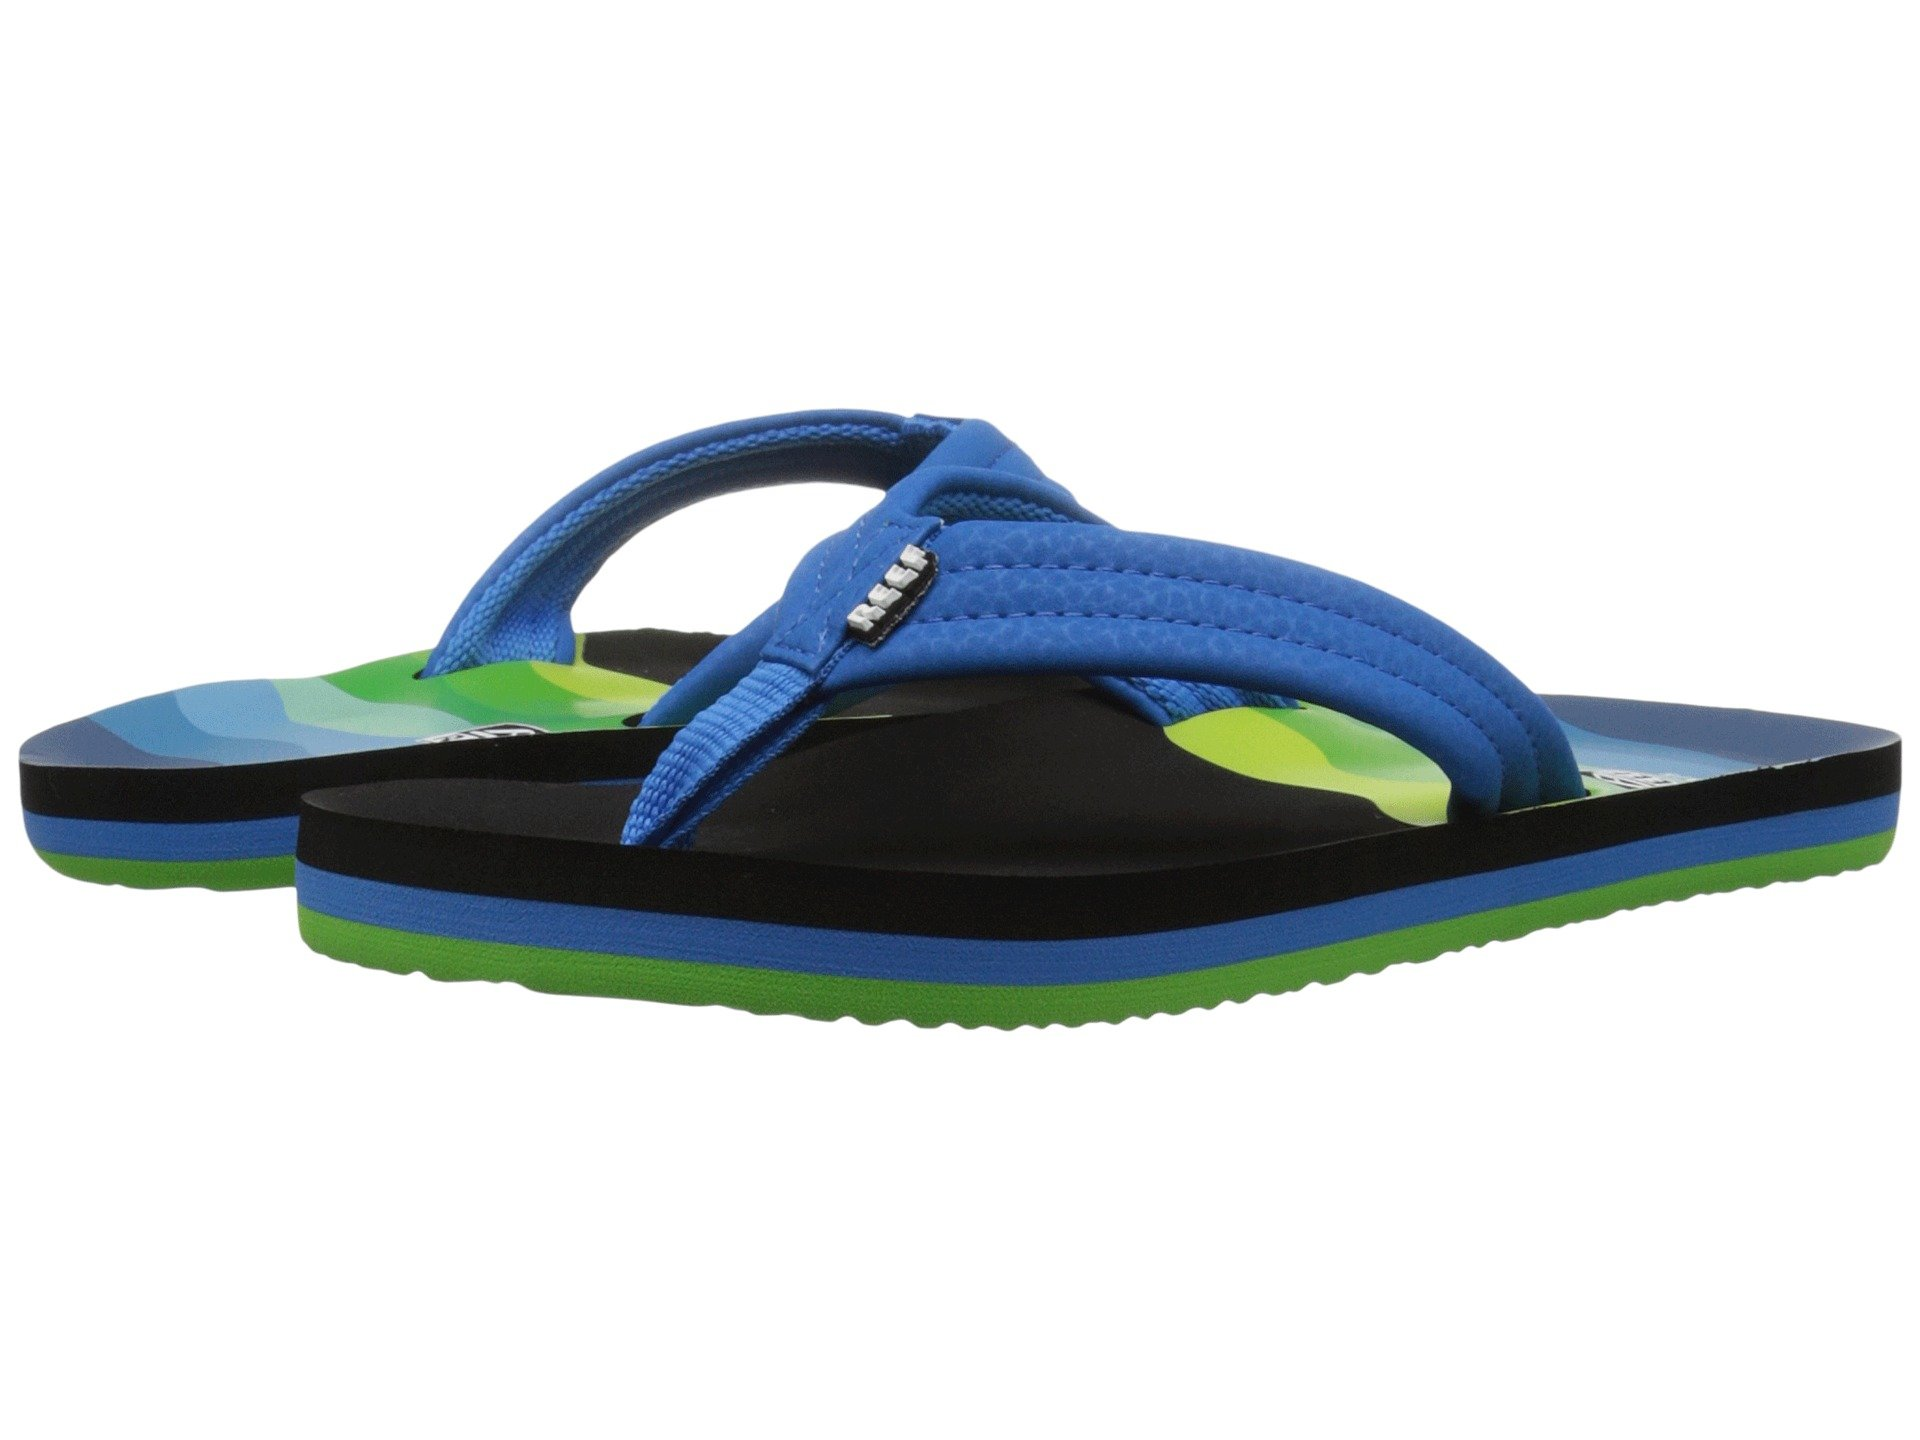 Size: 10 NEW Reef Thermo AHI Men/'s Flip-Flops,